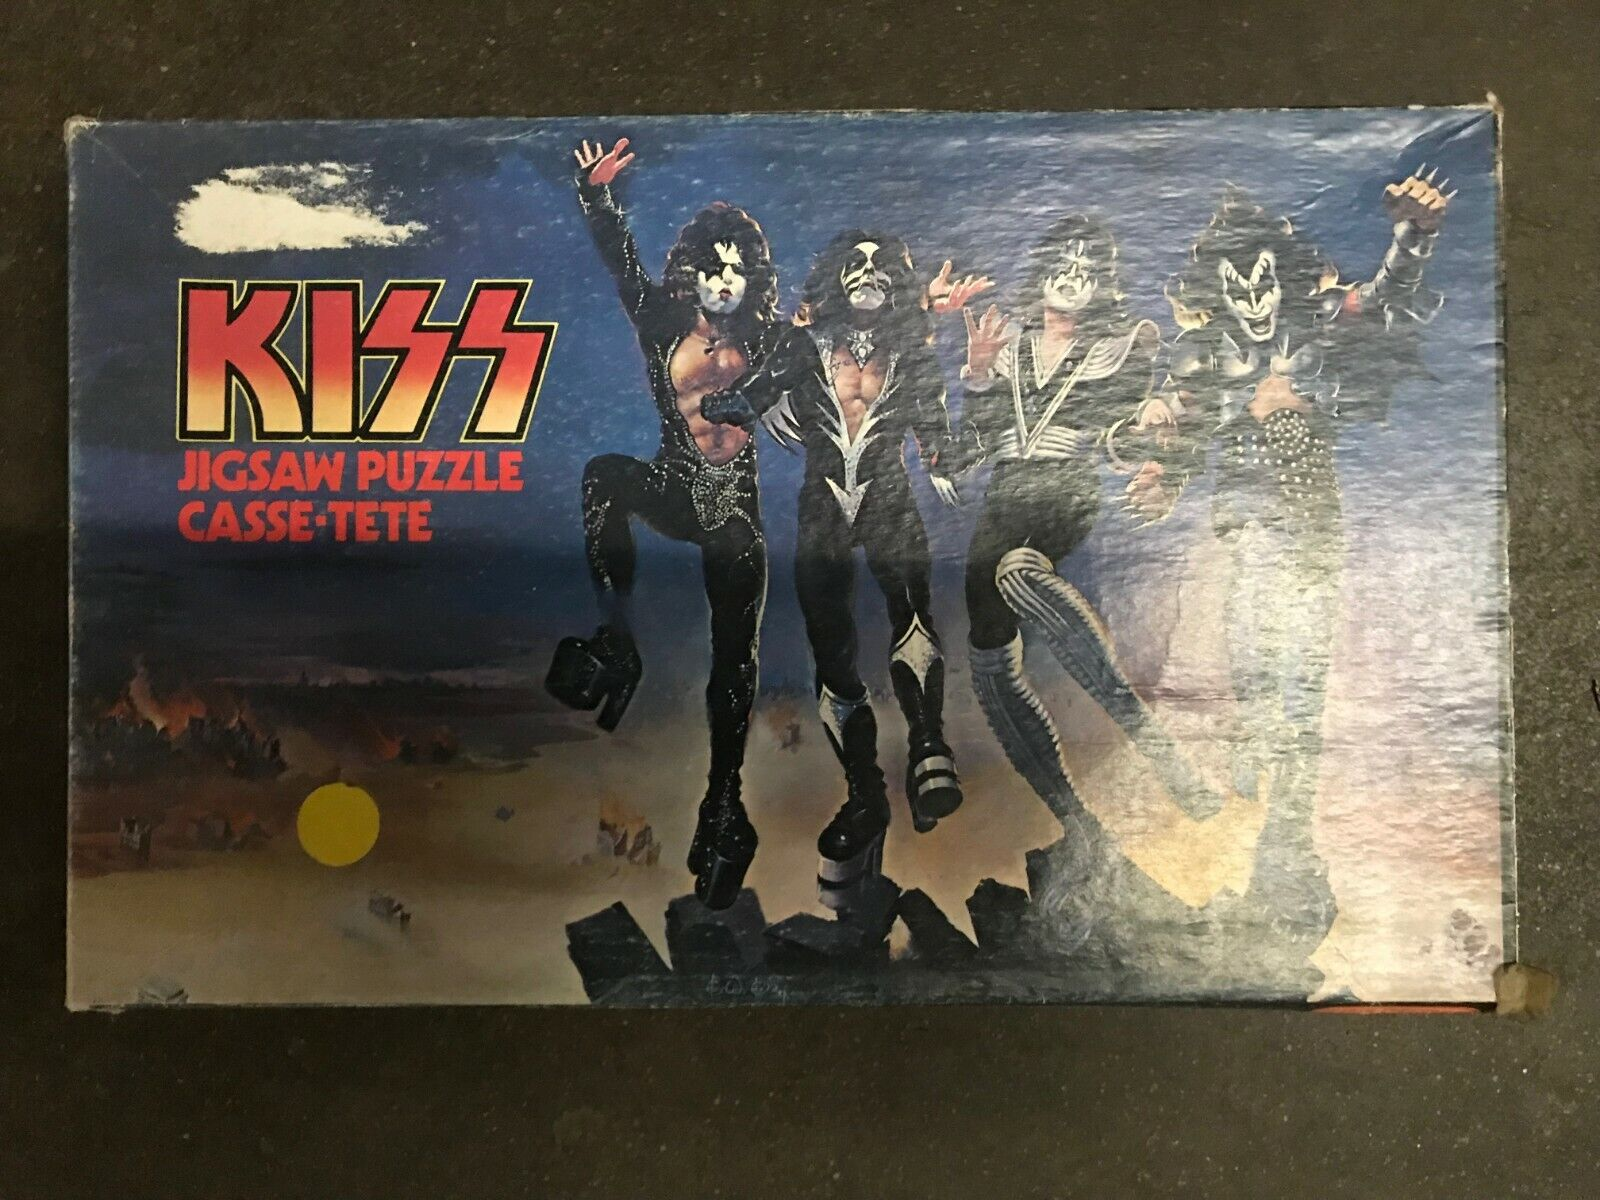 KISS Jigsaw Puzzle Casse-tete Rock and Roll 1970s 1980s All Four Members NOS